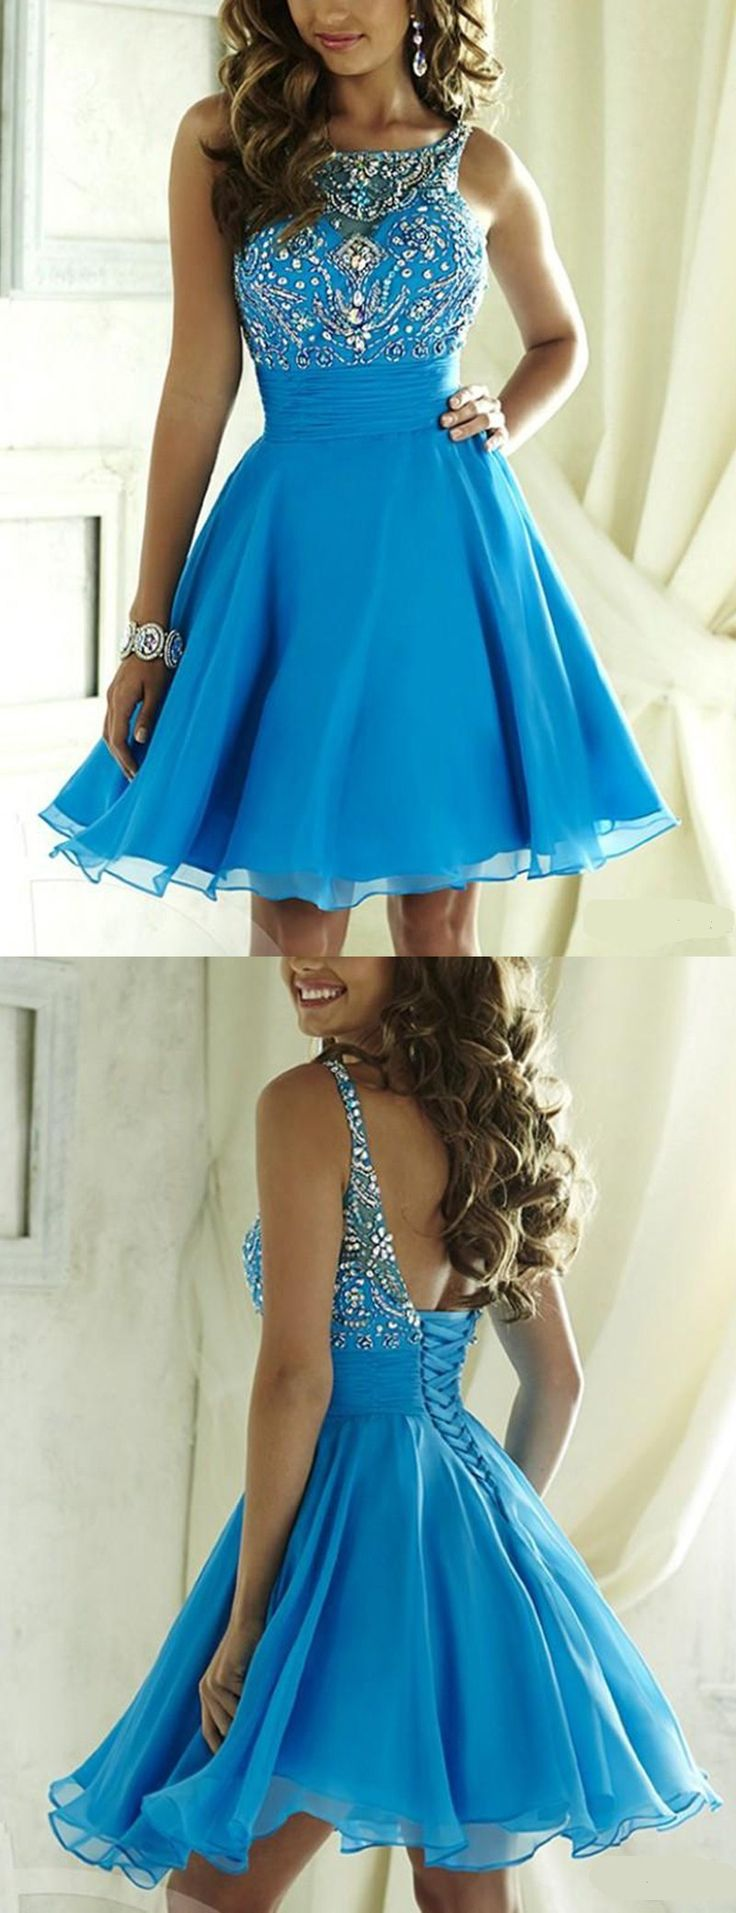 2016 homecoming dresses,homecoming dresses,short prom dresses,cheap homecoming dresses,junior homecoming dresses,baby blue homecoming dresses